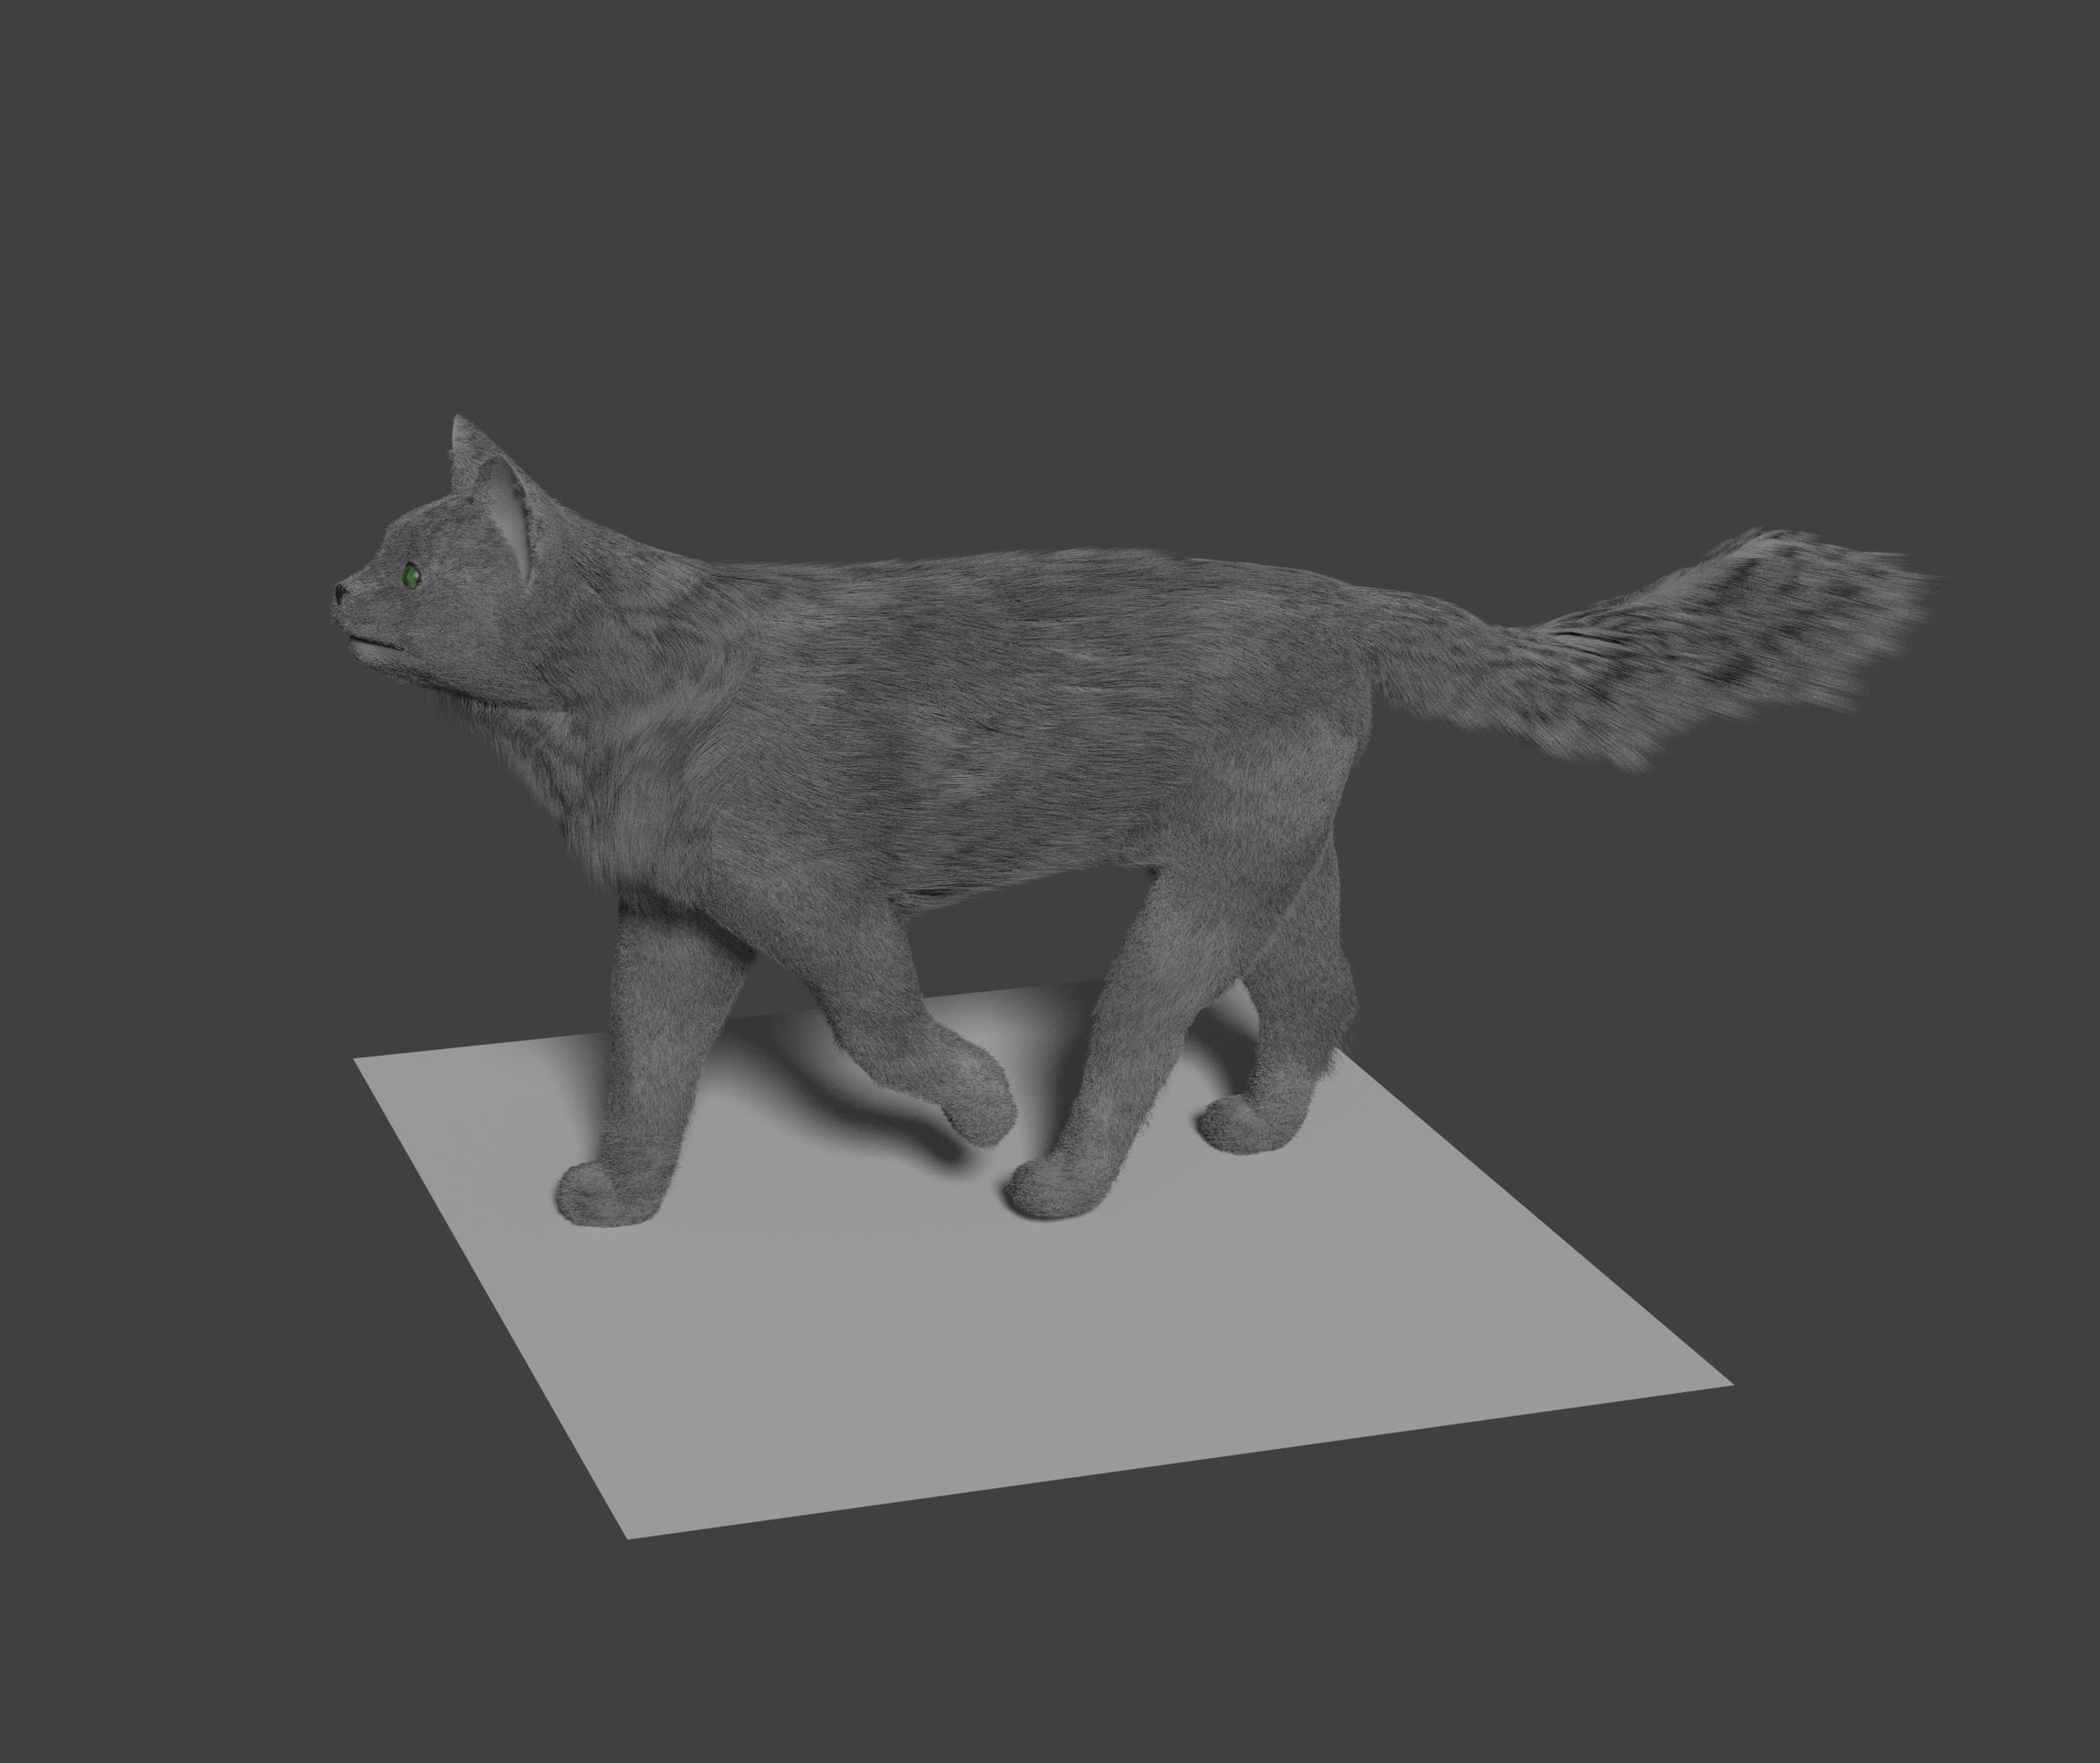 Cat Model - Thoughts? - Focused Critiques - Blender Artists Community